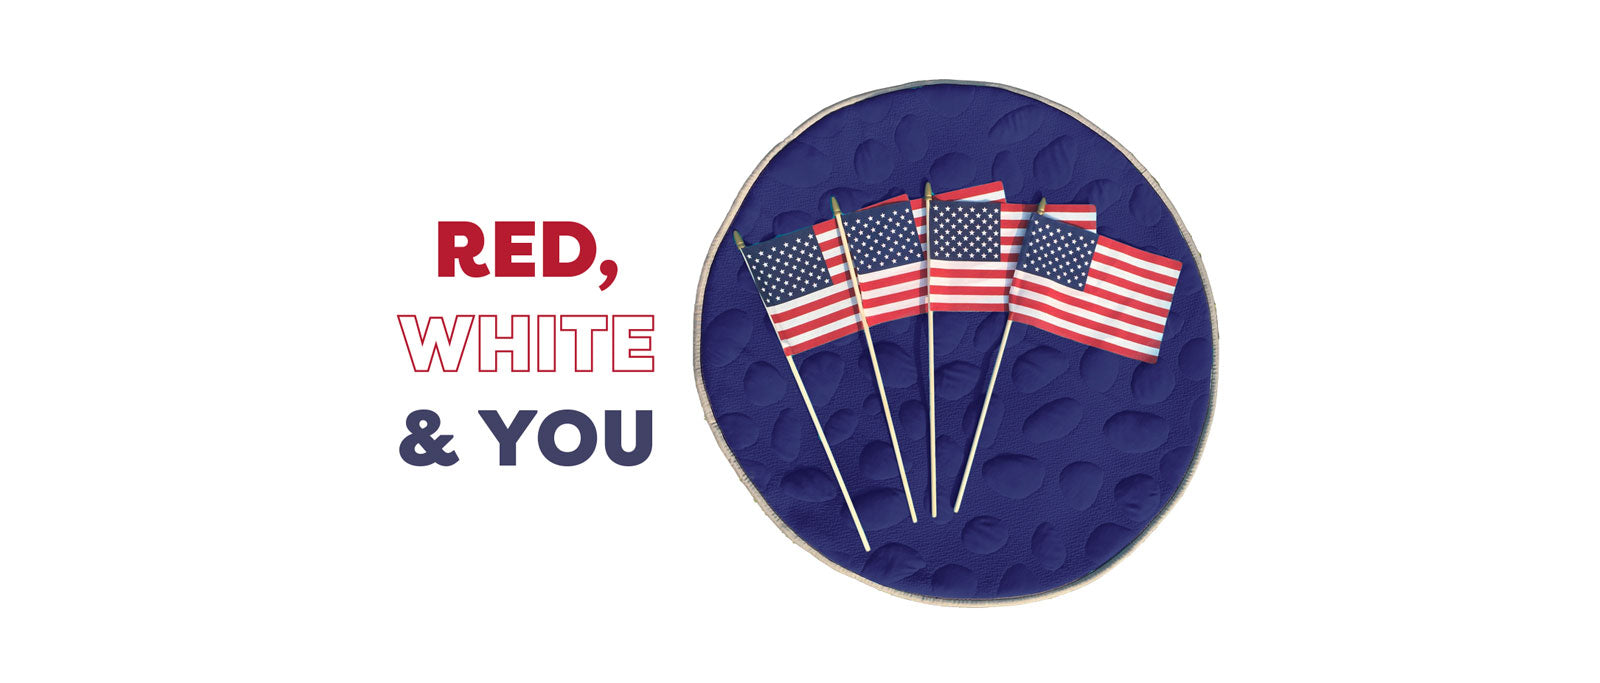 Red, White & YOU